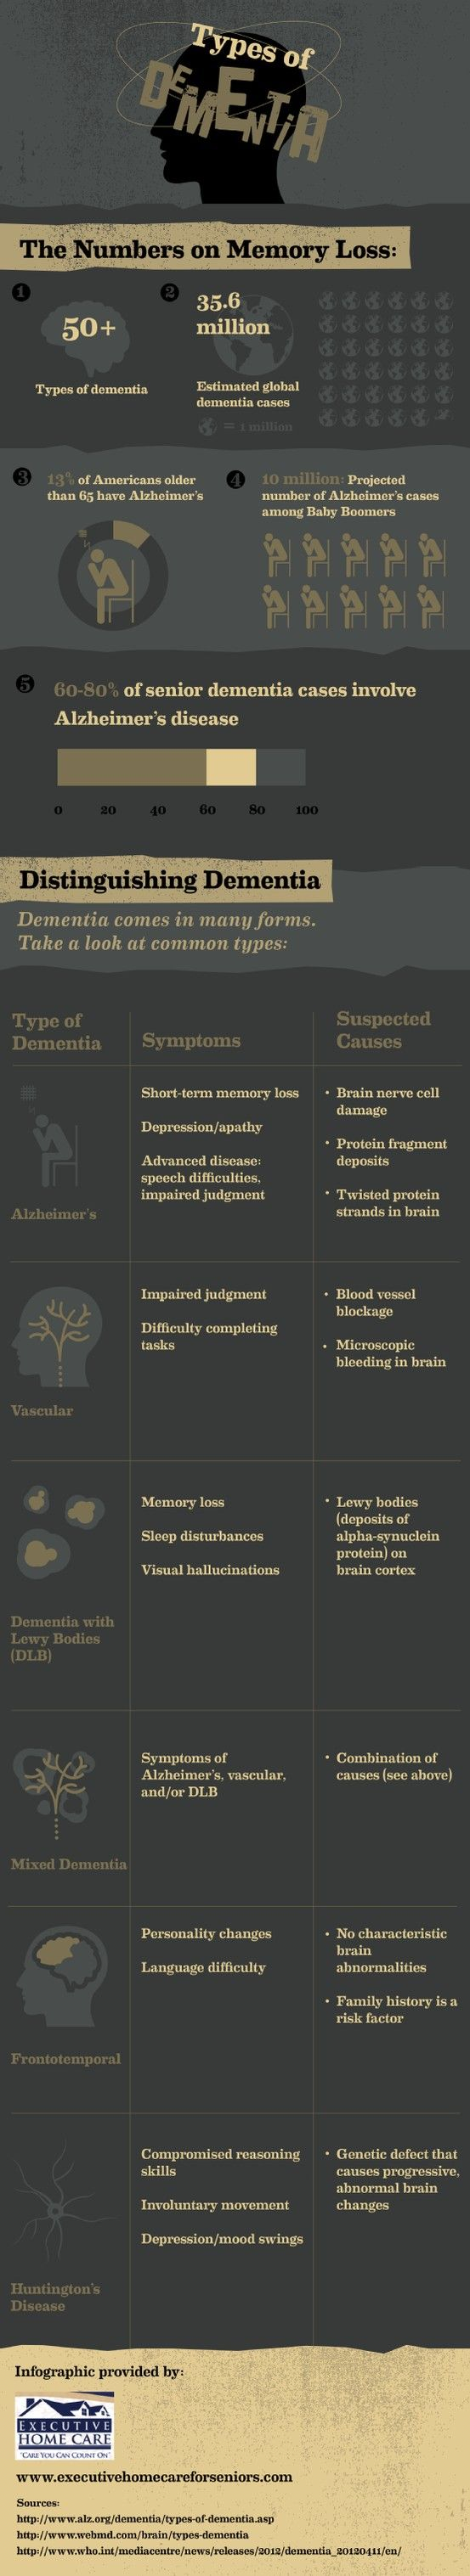 Memory loss drug abuse image 8